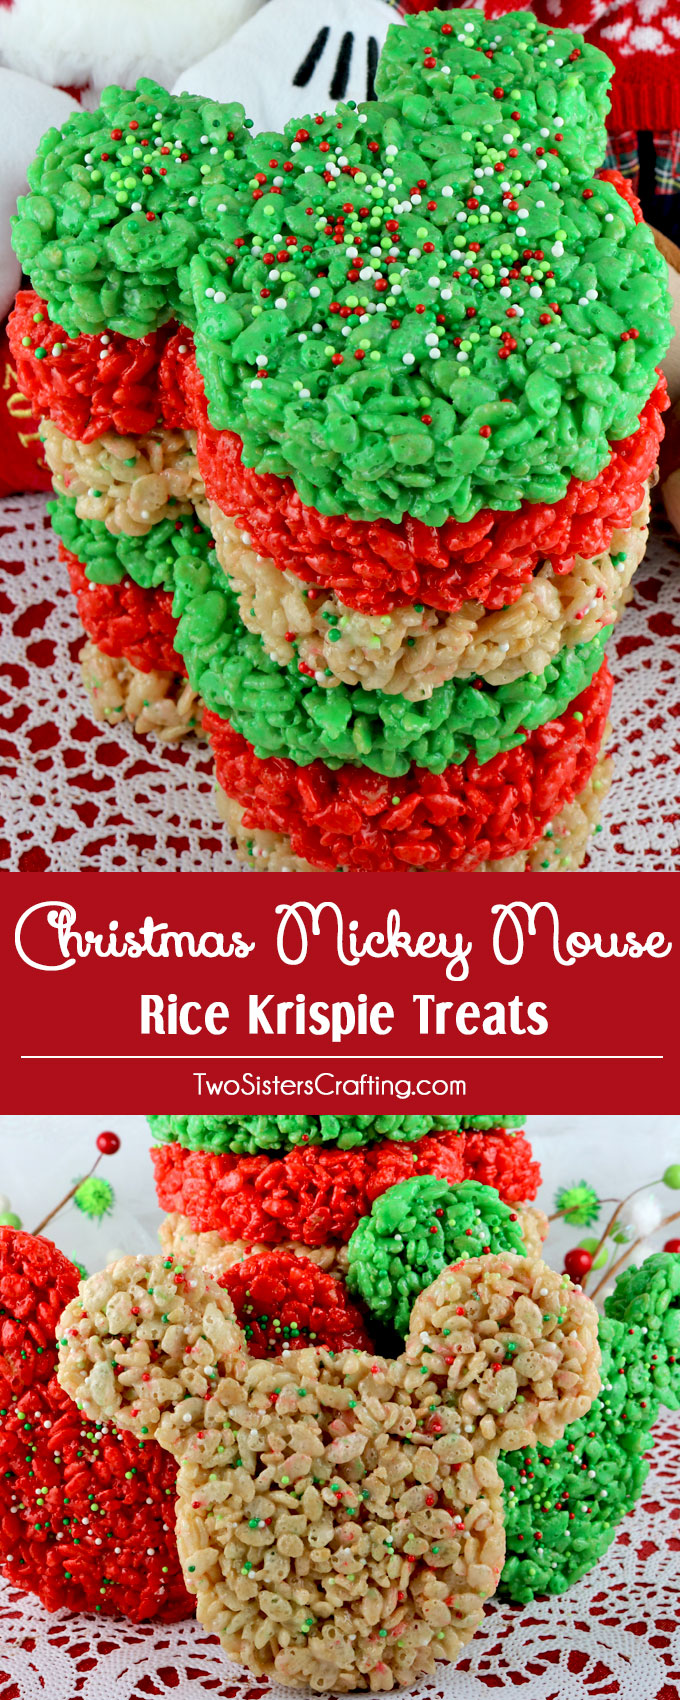 Christmas Mickey Mouse Rice Krispie Treats - Two Sisters